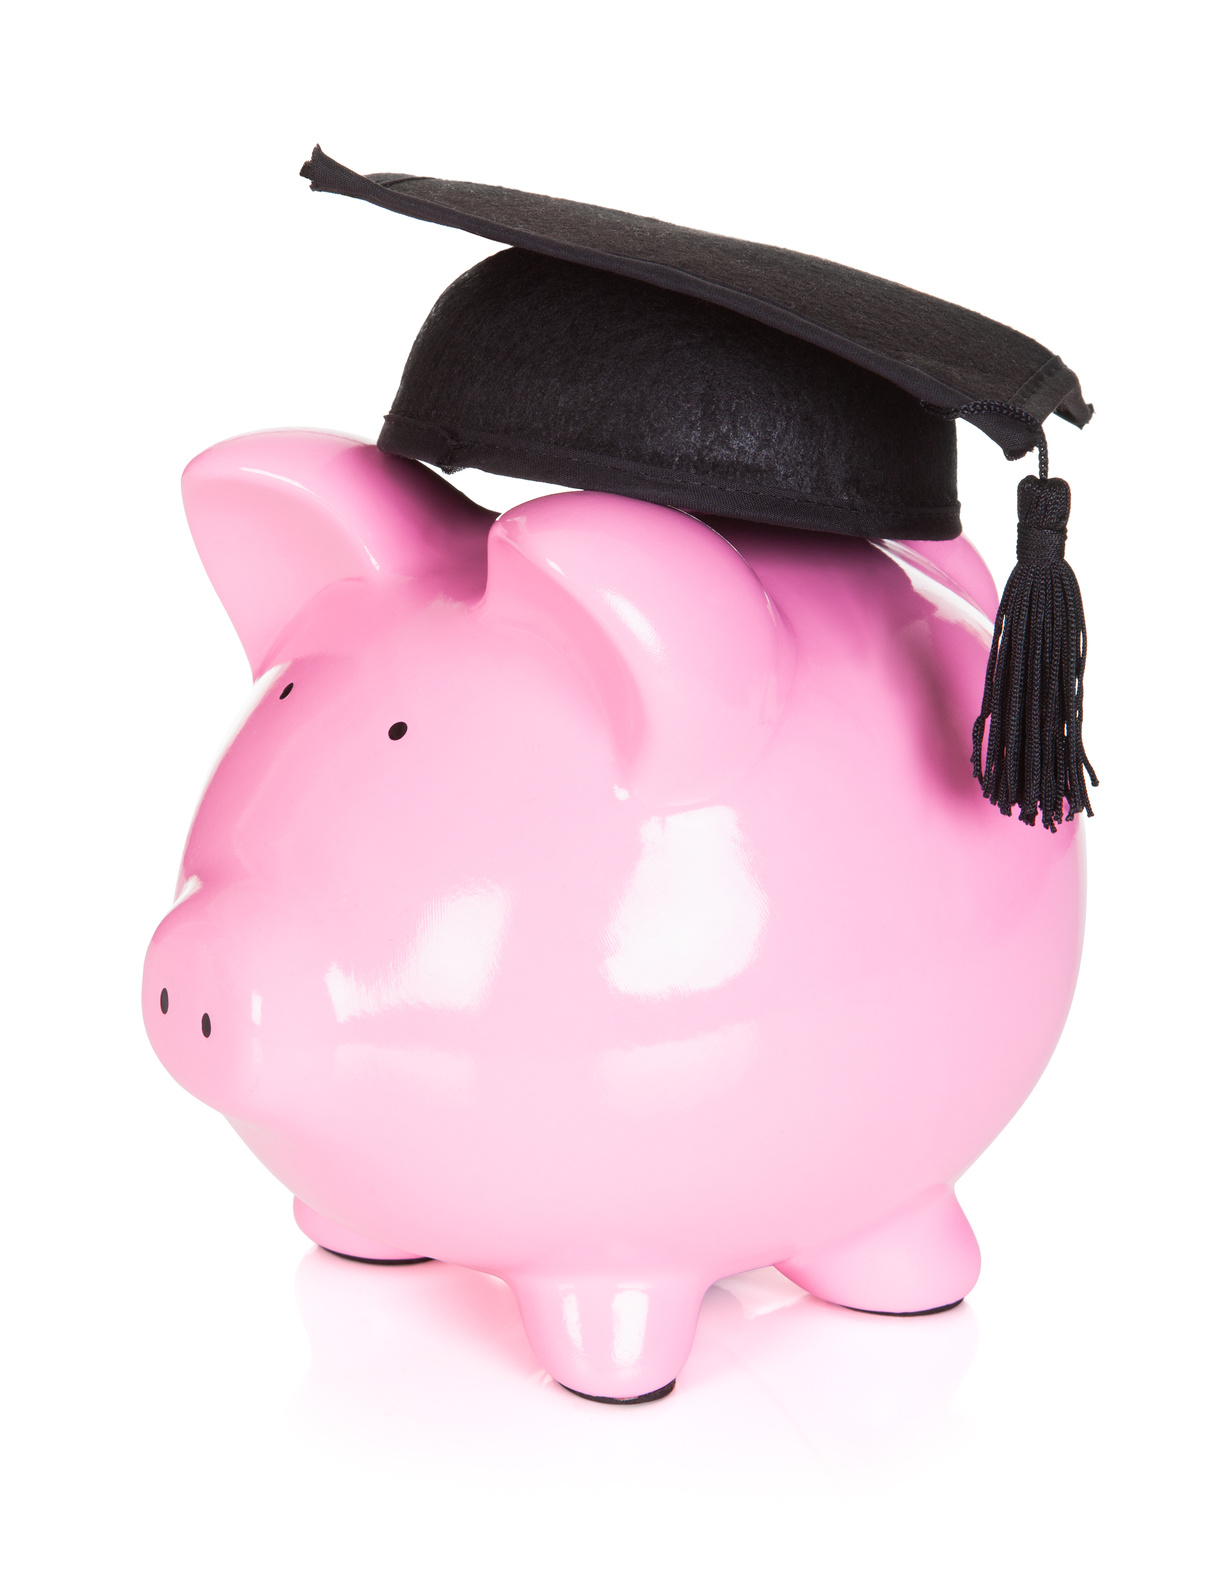 529 Plans ? A Tax Advantaged College Savings Program